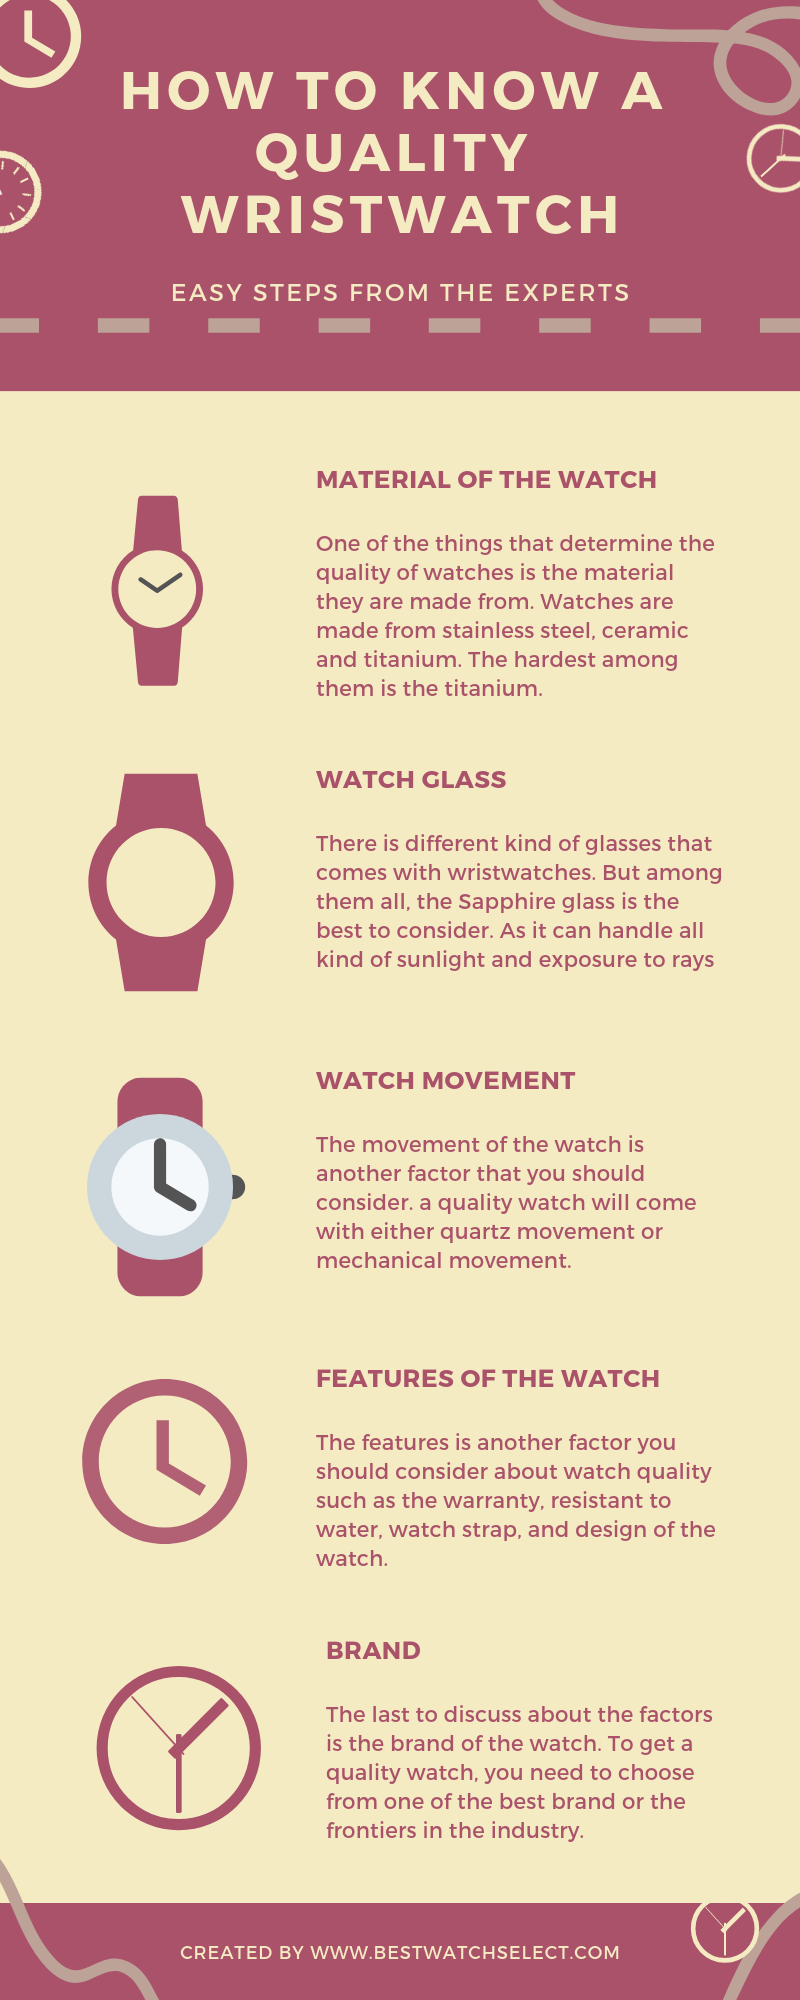 How to Know a Quality Wristwatch